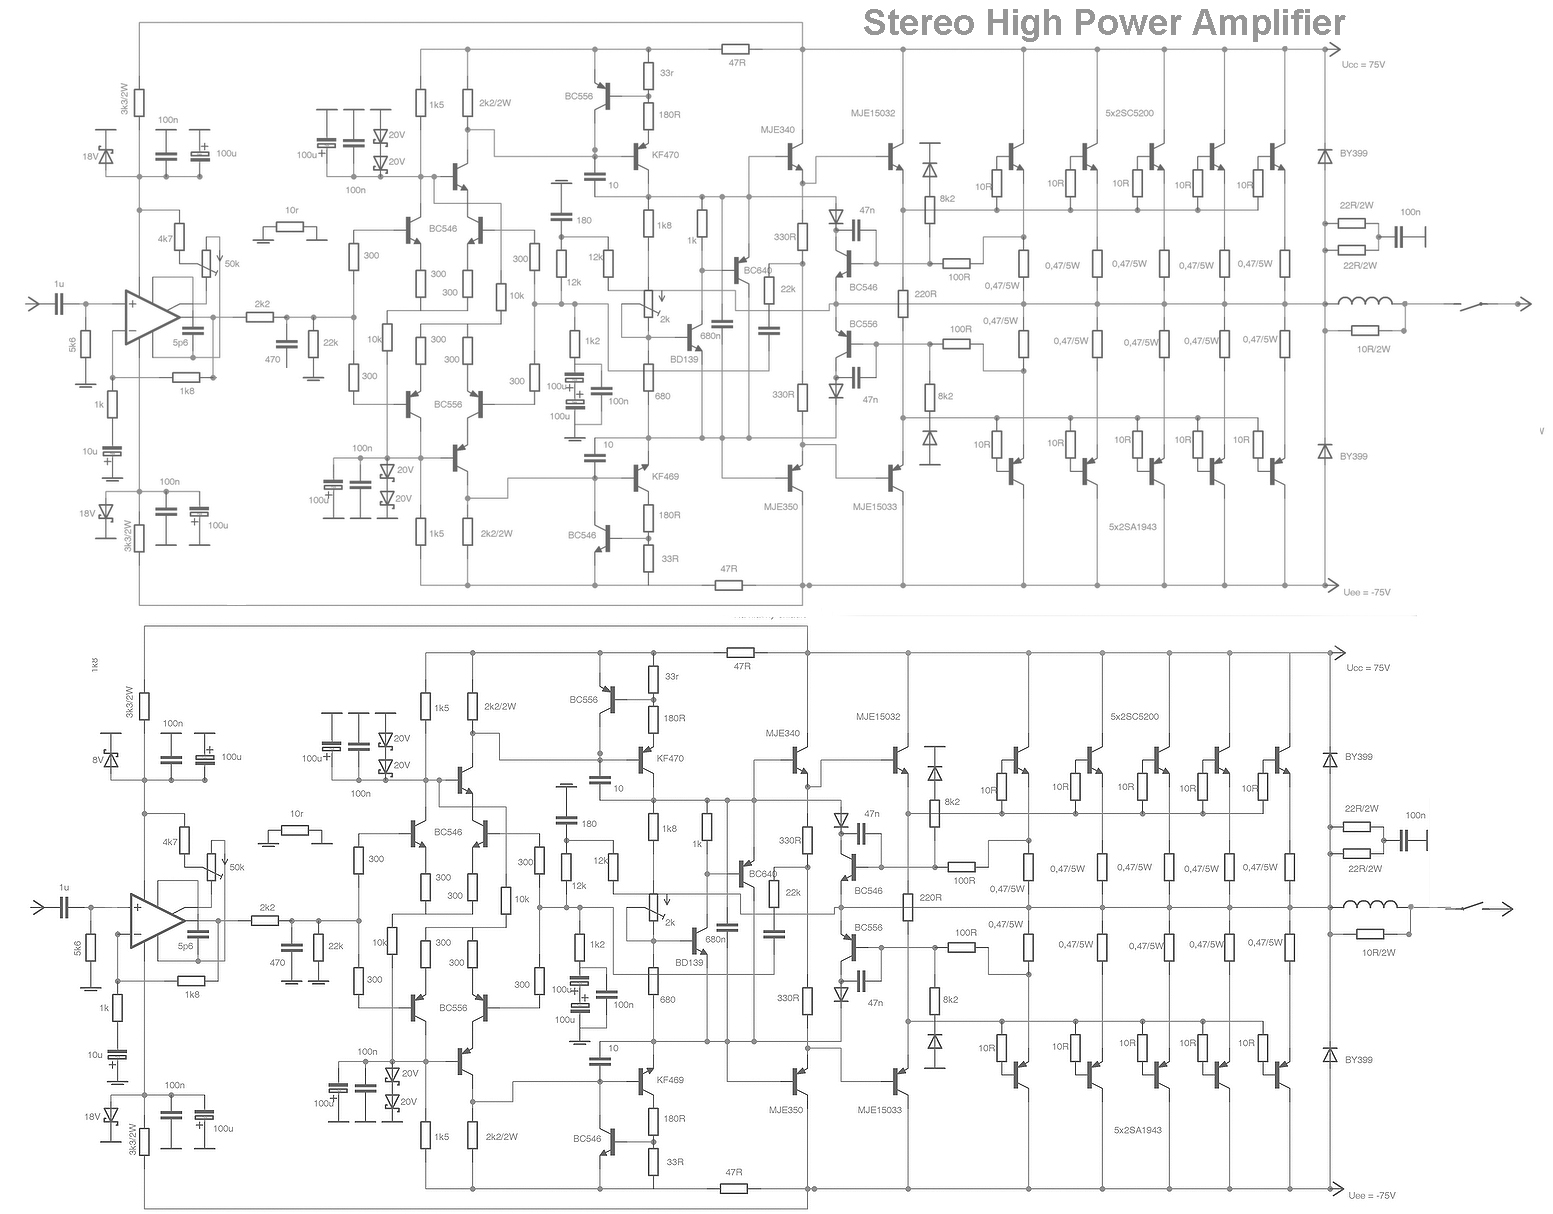 stereo high power audio amplifier ~ schematic diagram circuit on simple audio amplifier schematic